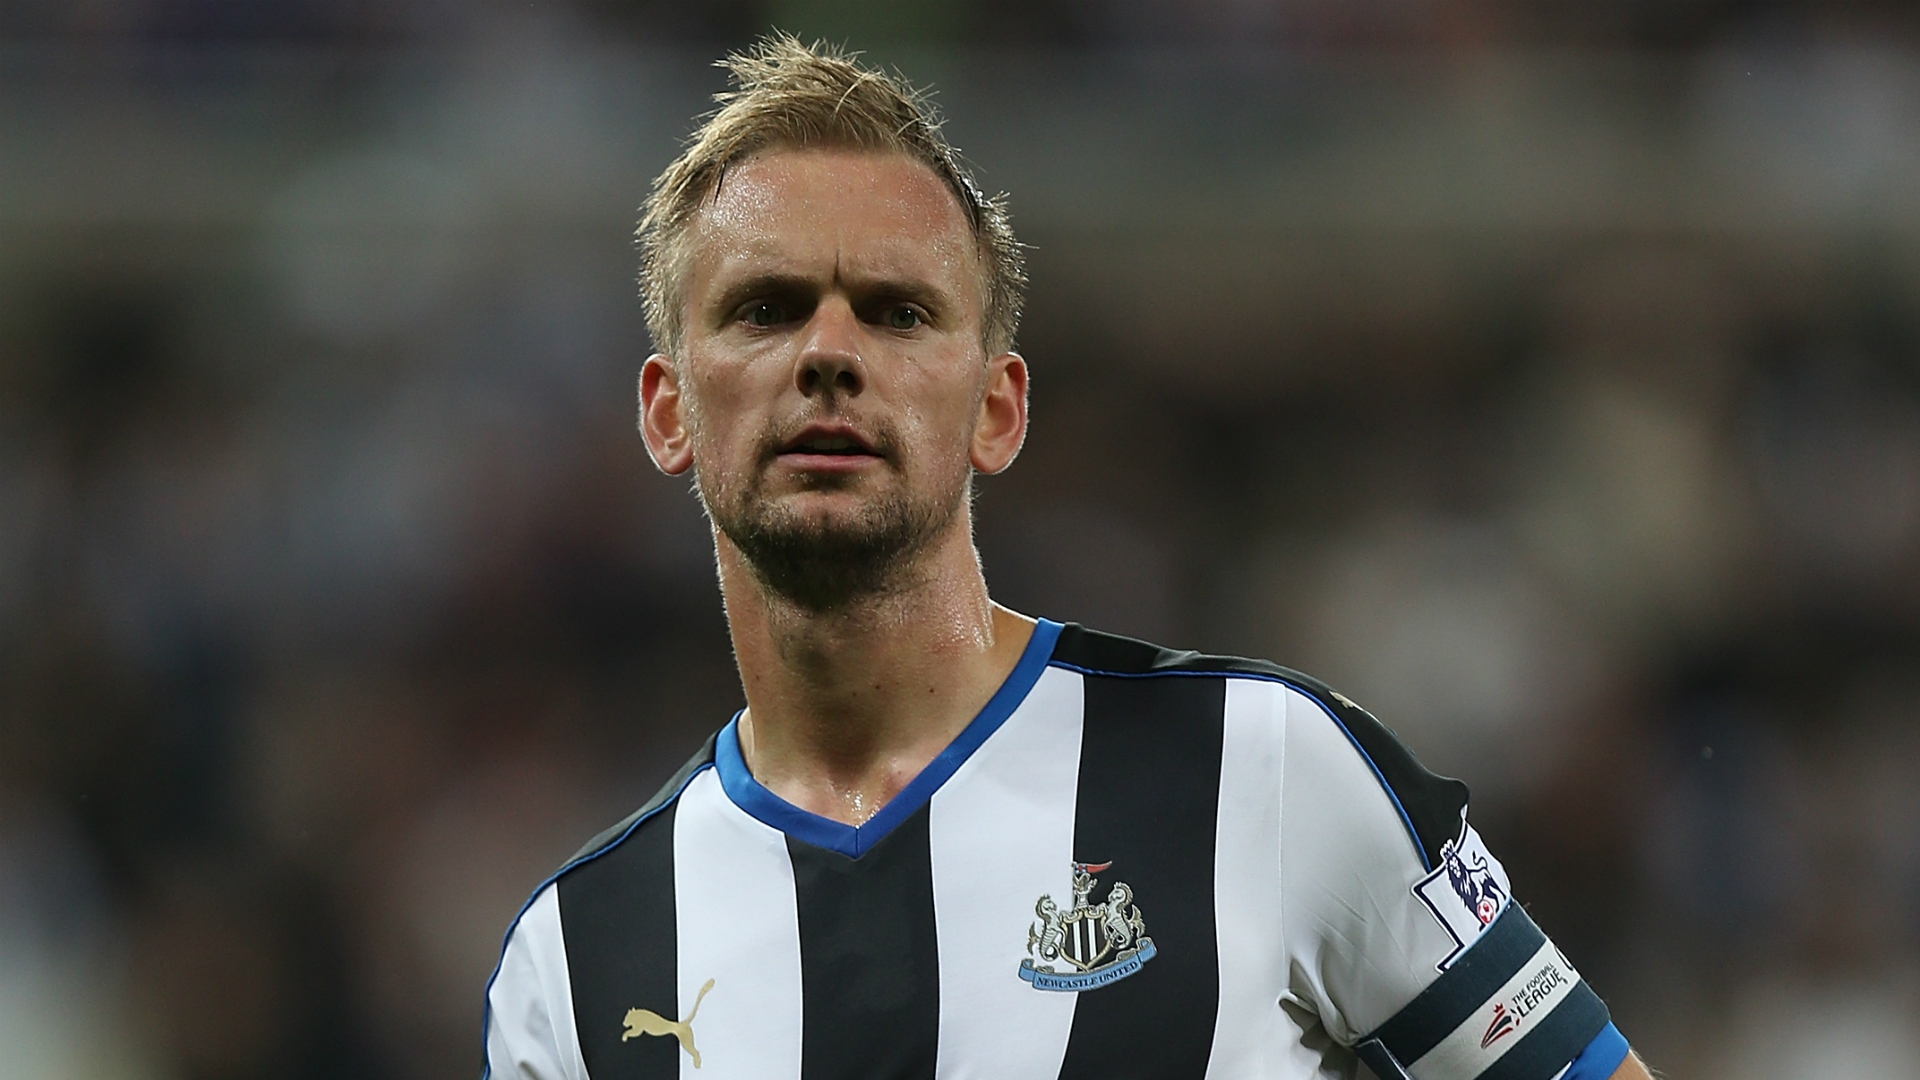 De Jong brings forgettable Newcastle spell to an end by re-joining Ajax